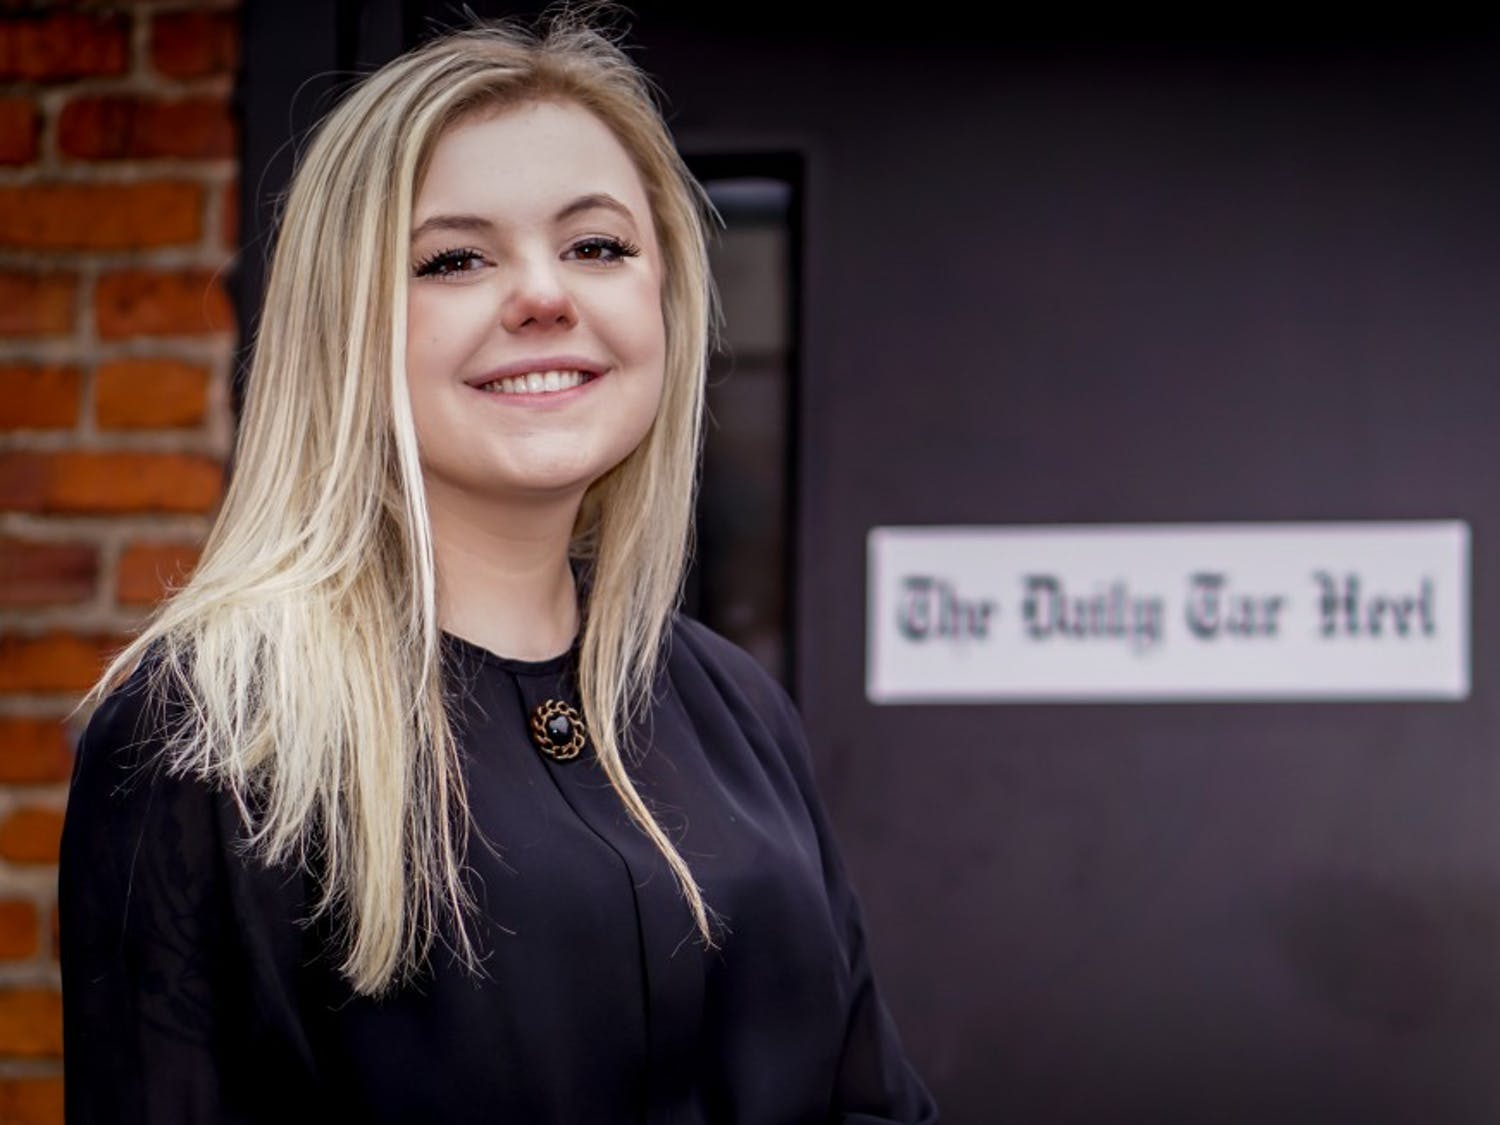 Maddy Arrowood, junior journalism and American history double major, is selected as The Daily Tar Heel editor-in-chief for 2019-2020  on Saturday, April 6, 2019. Arrowood plans to bring The Daily Tar Heel into the digtal age with a focus with online content.